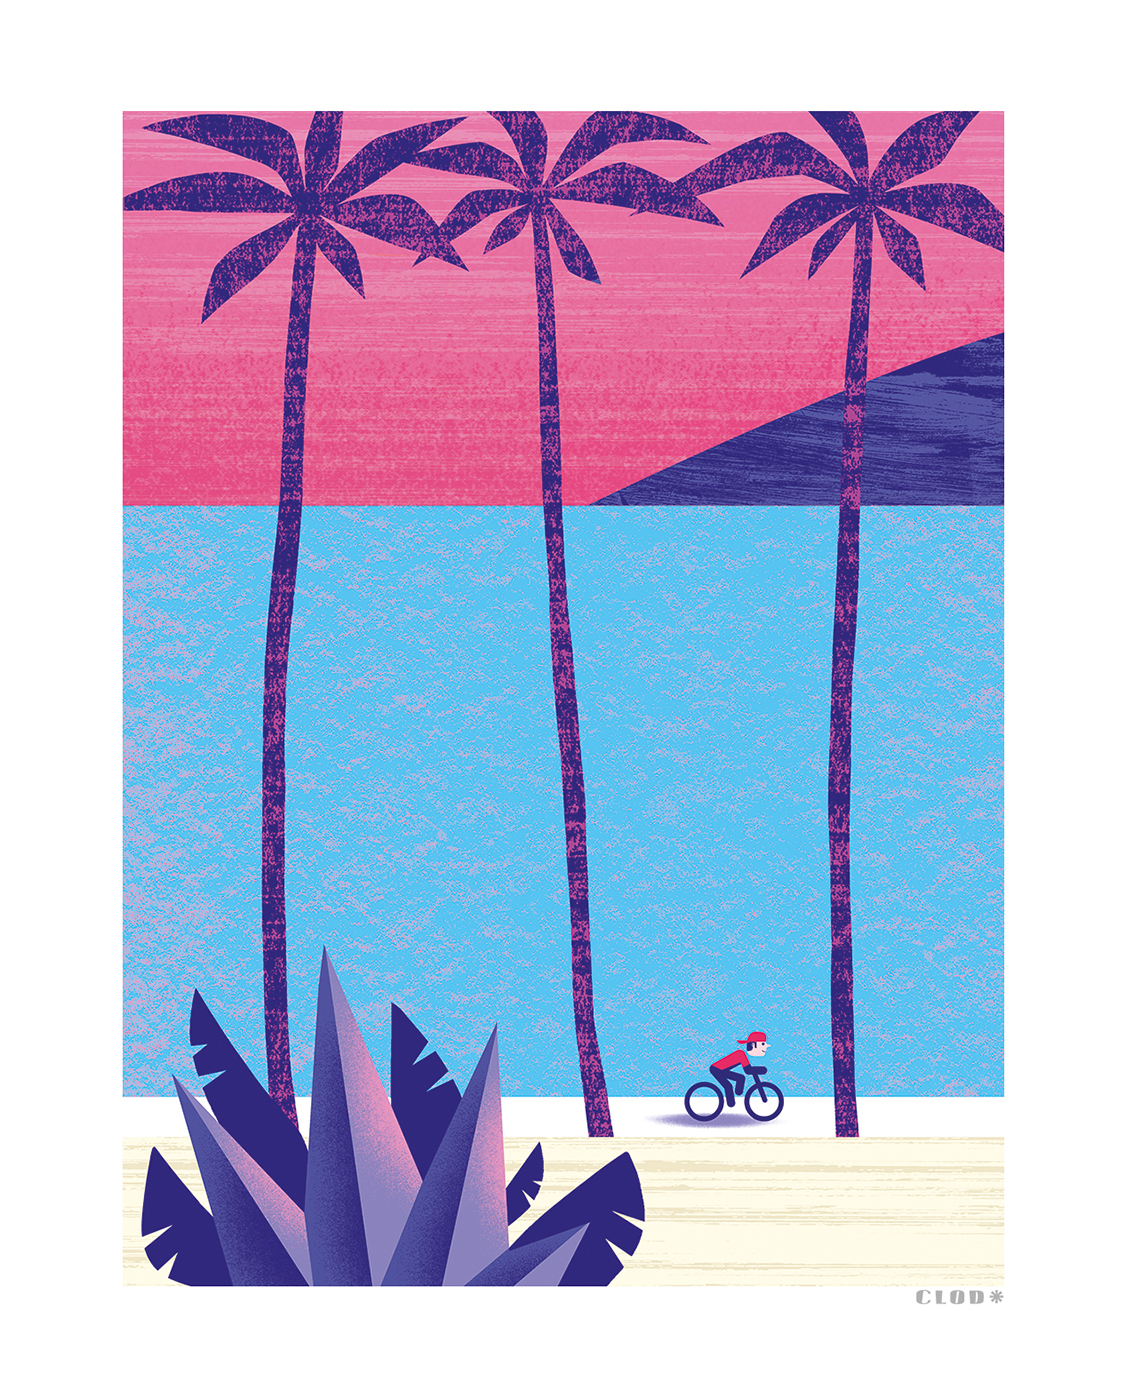 Clod illustration tirage d'art PapaPaper vélo en Californie